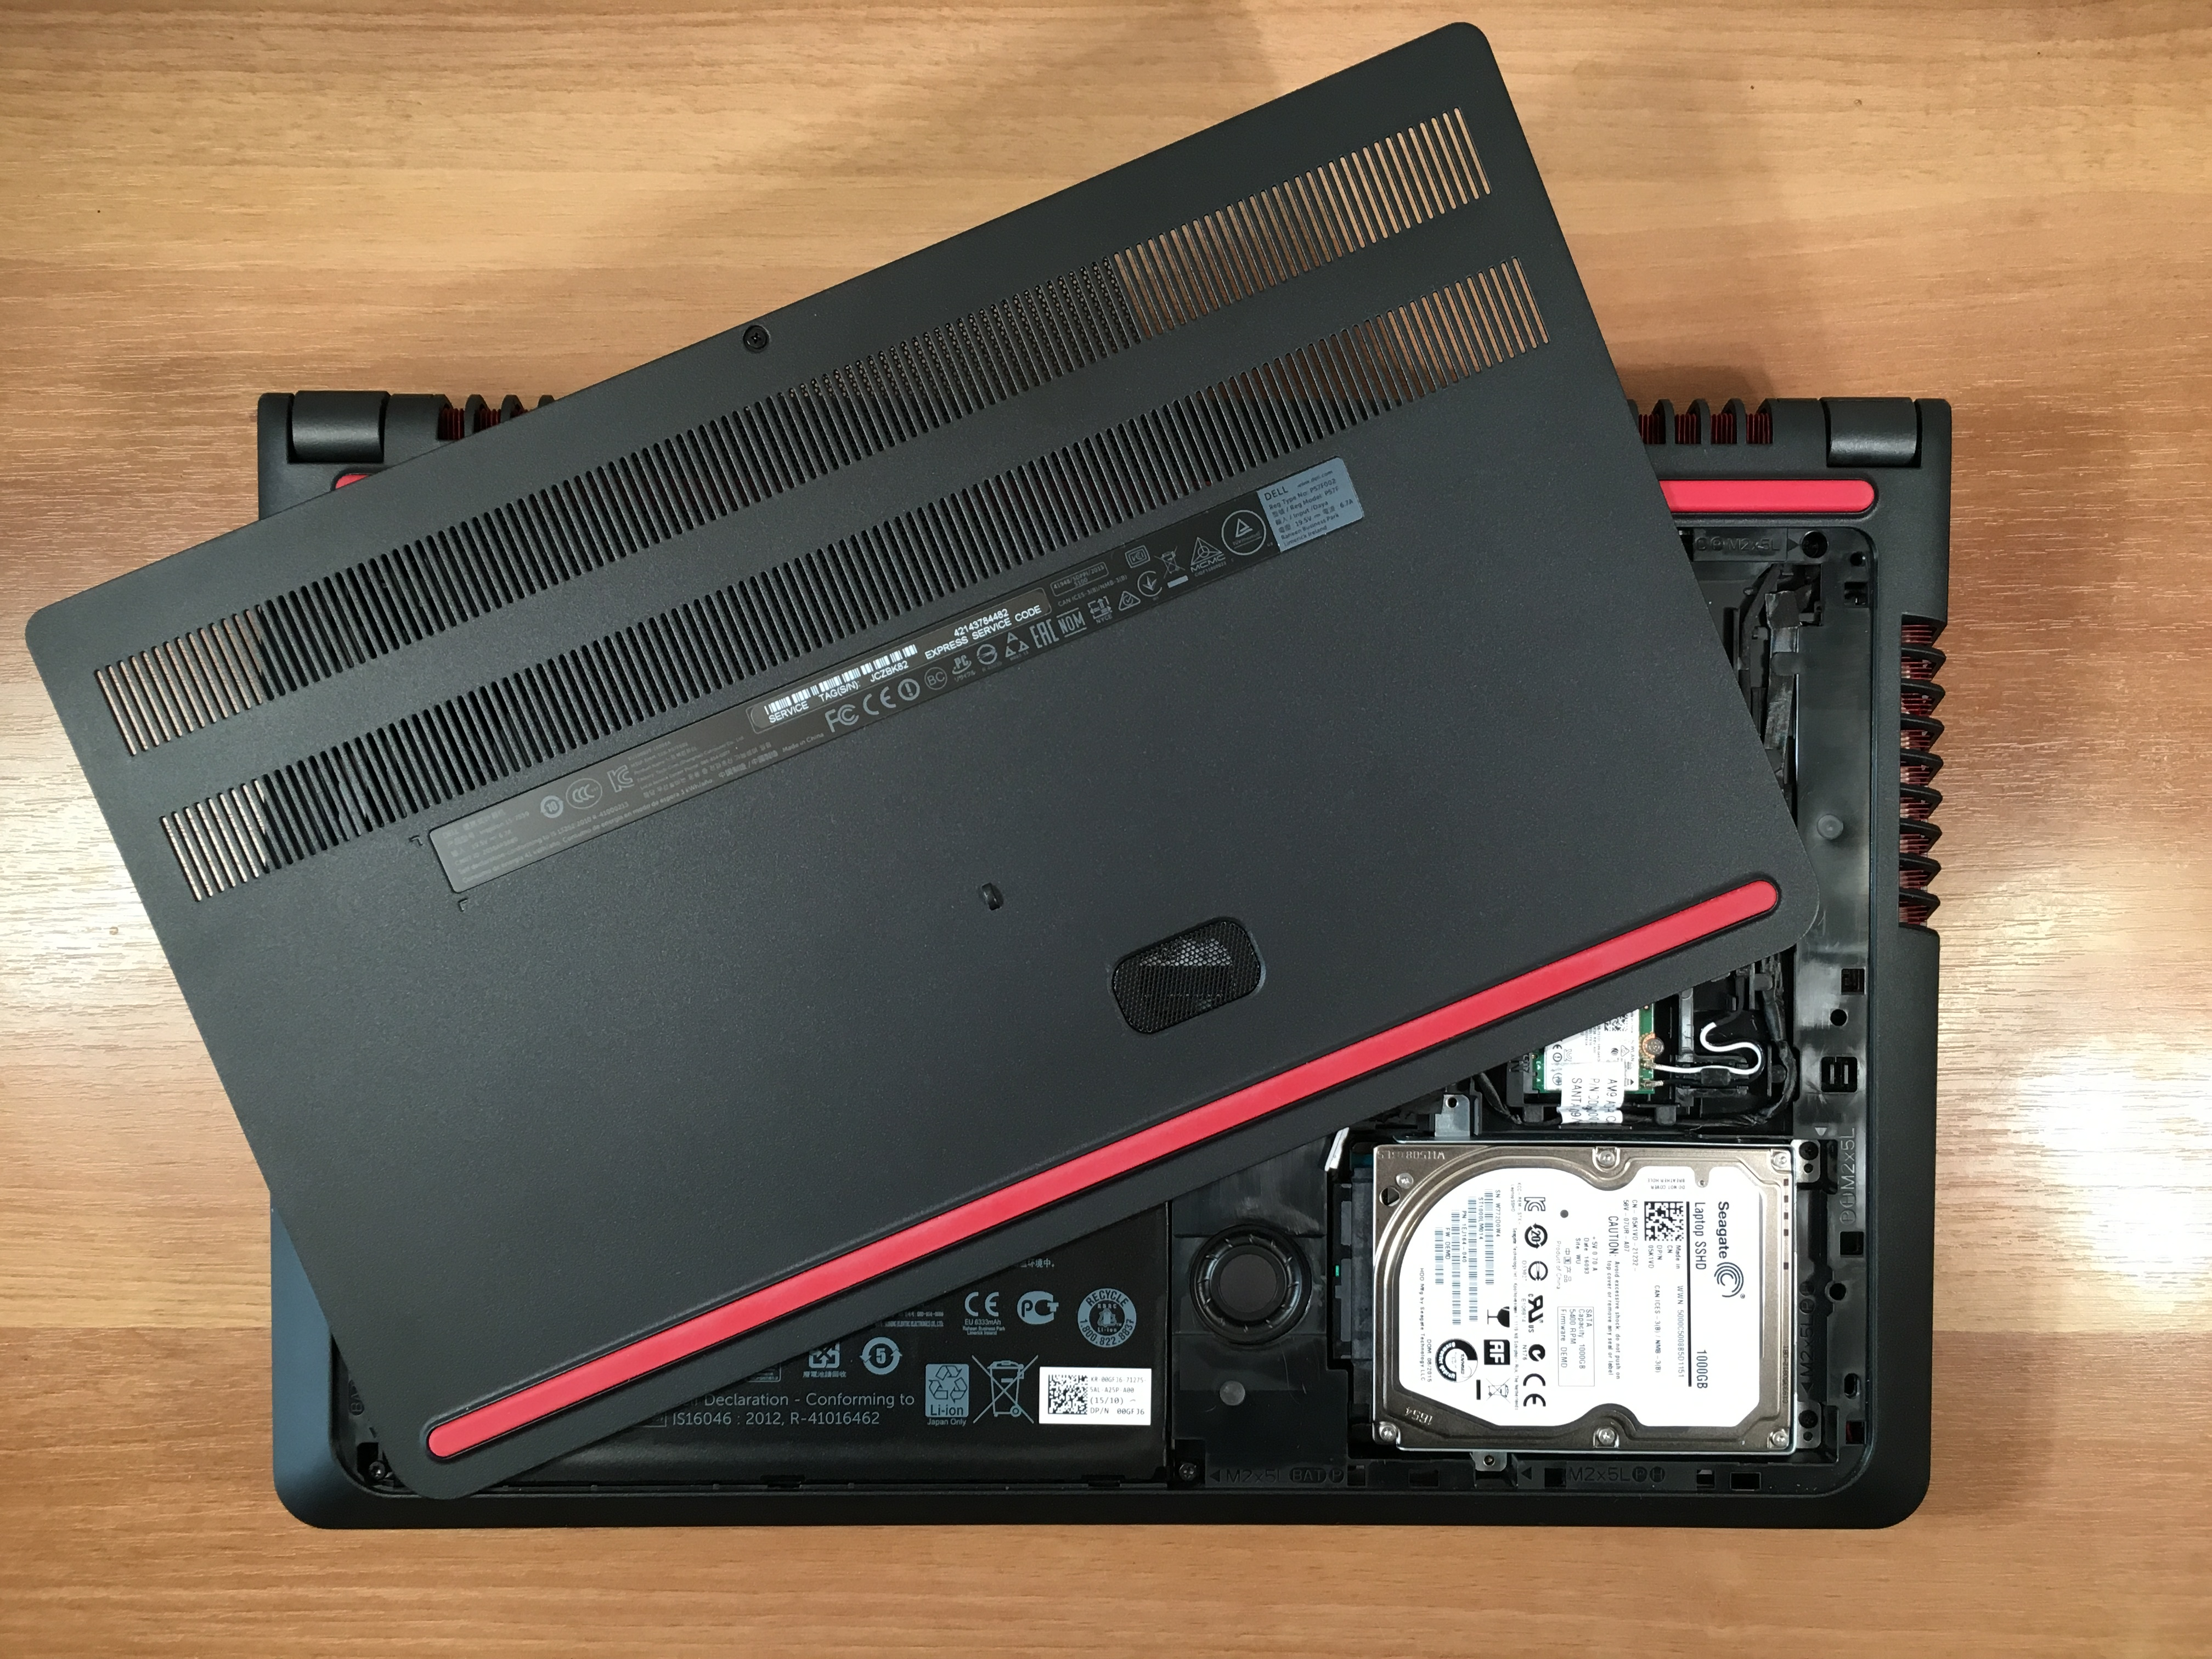 Dell Inspiron 7559 Review The Gaming Arena Has Become